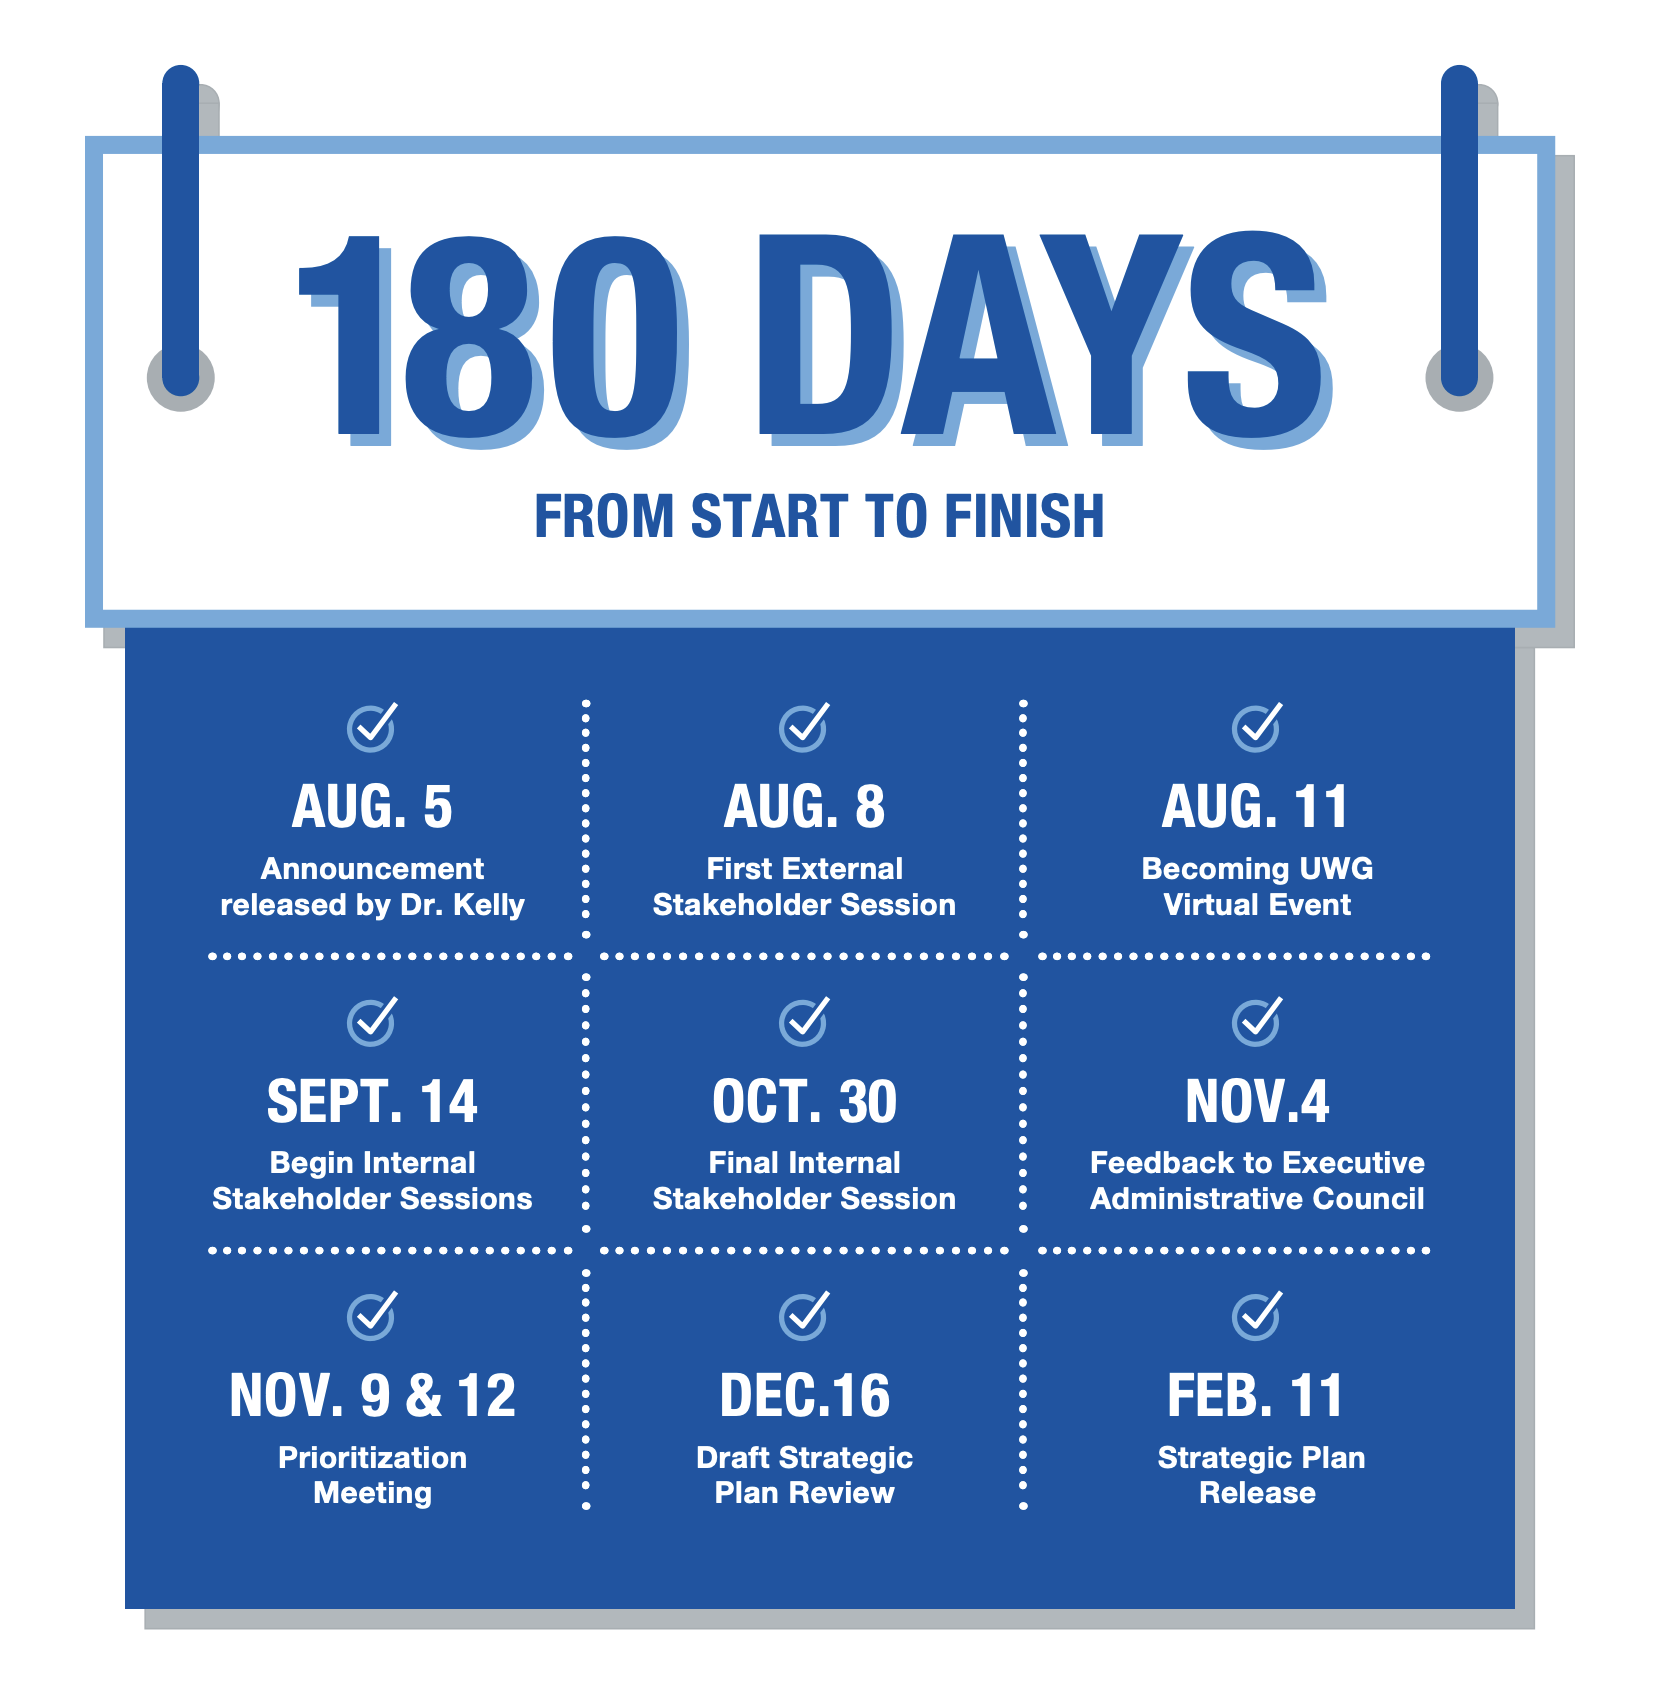 180 Days of Becoming UWG